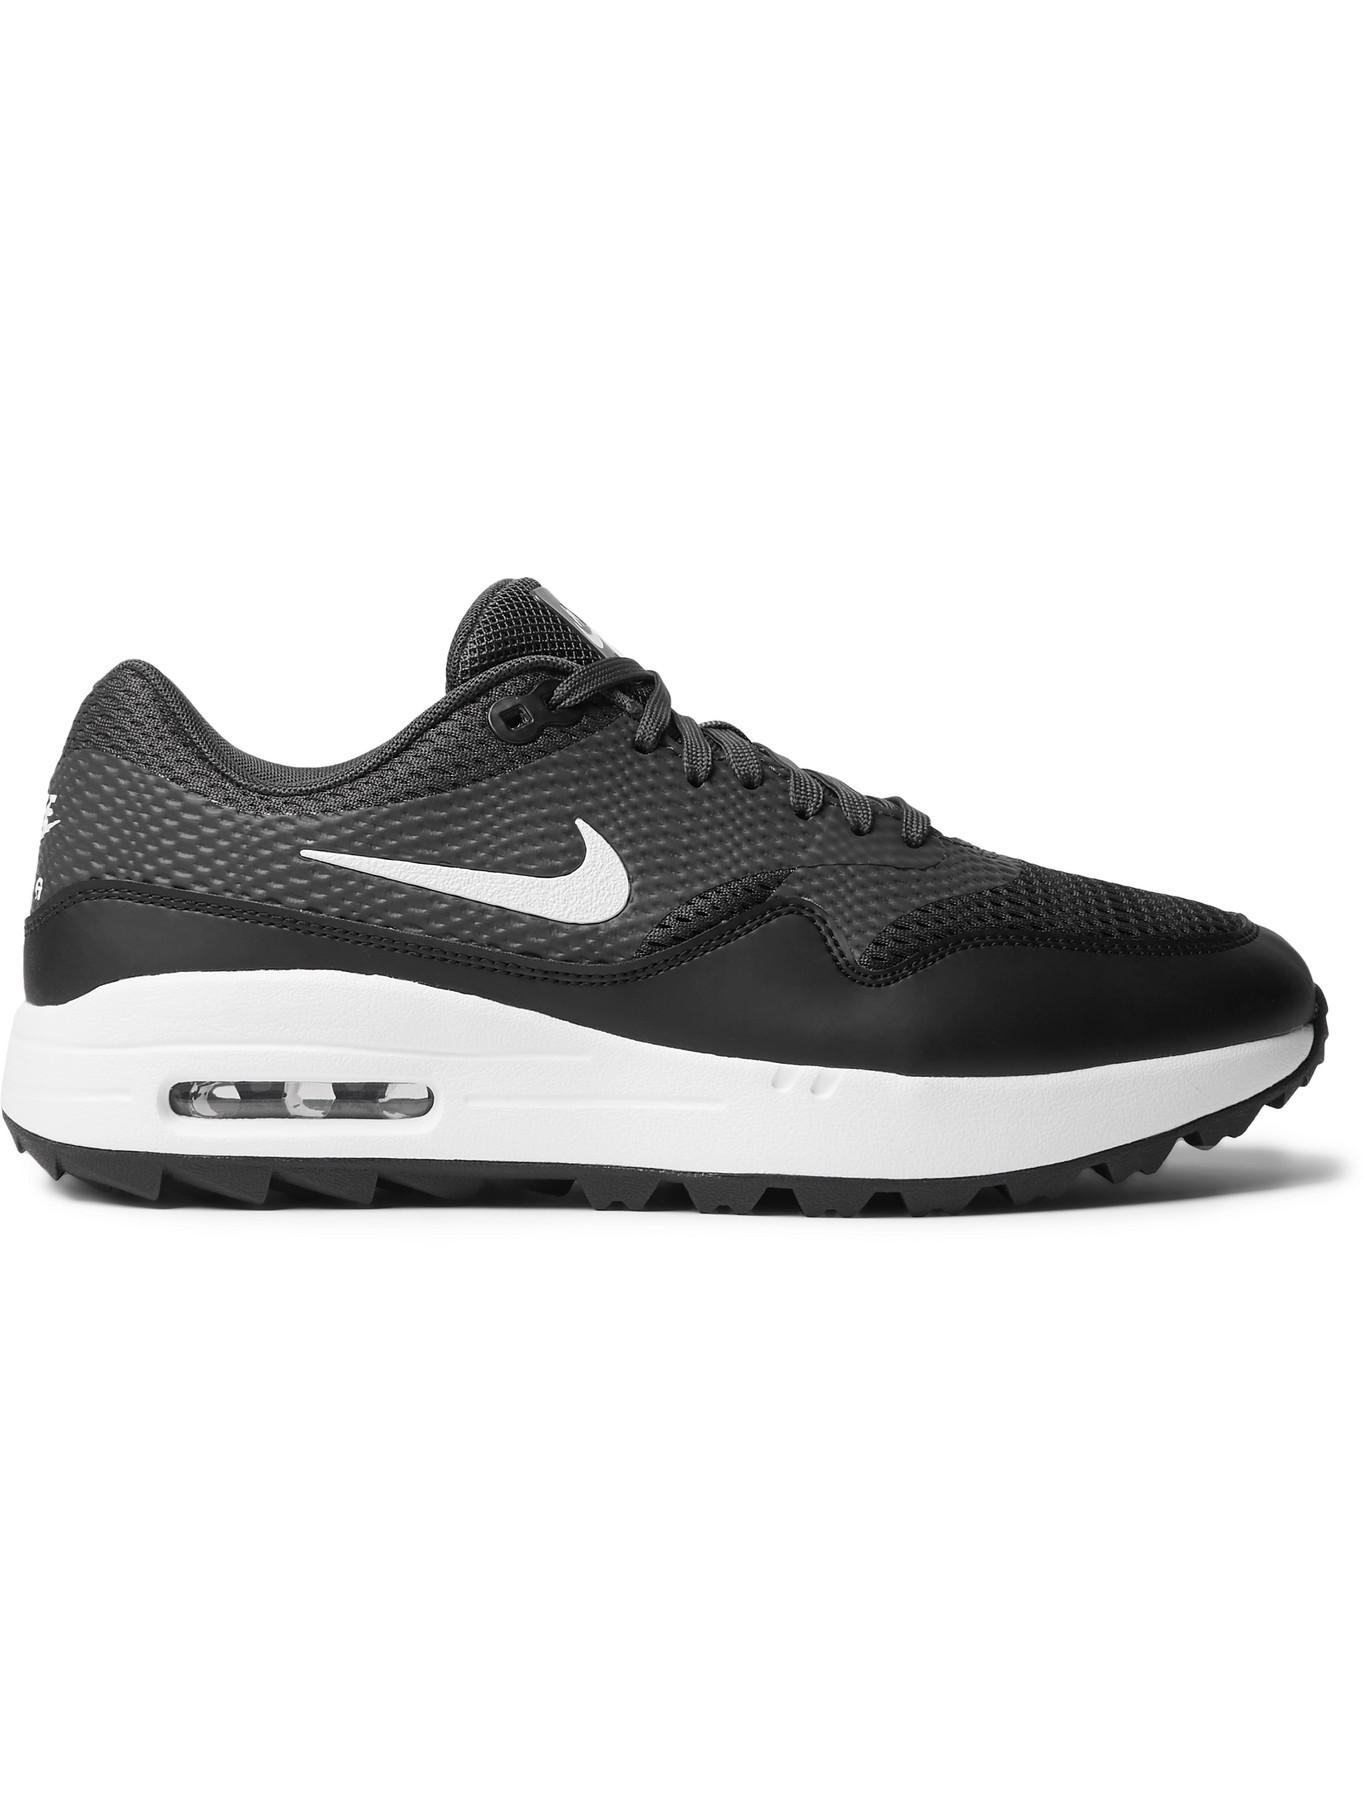 Nike Synthetic Air Max 1g in Black for Men - Lyst